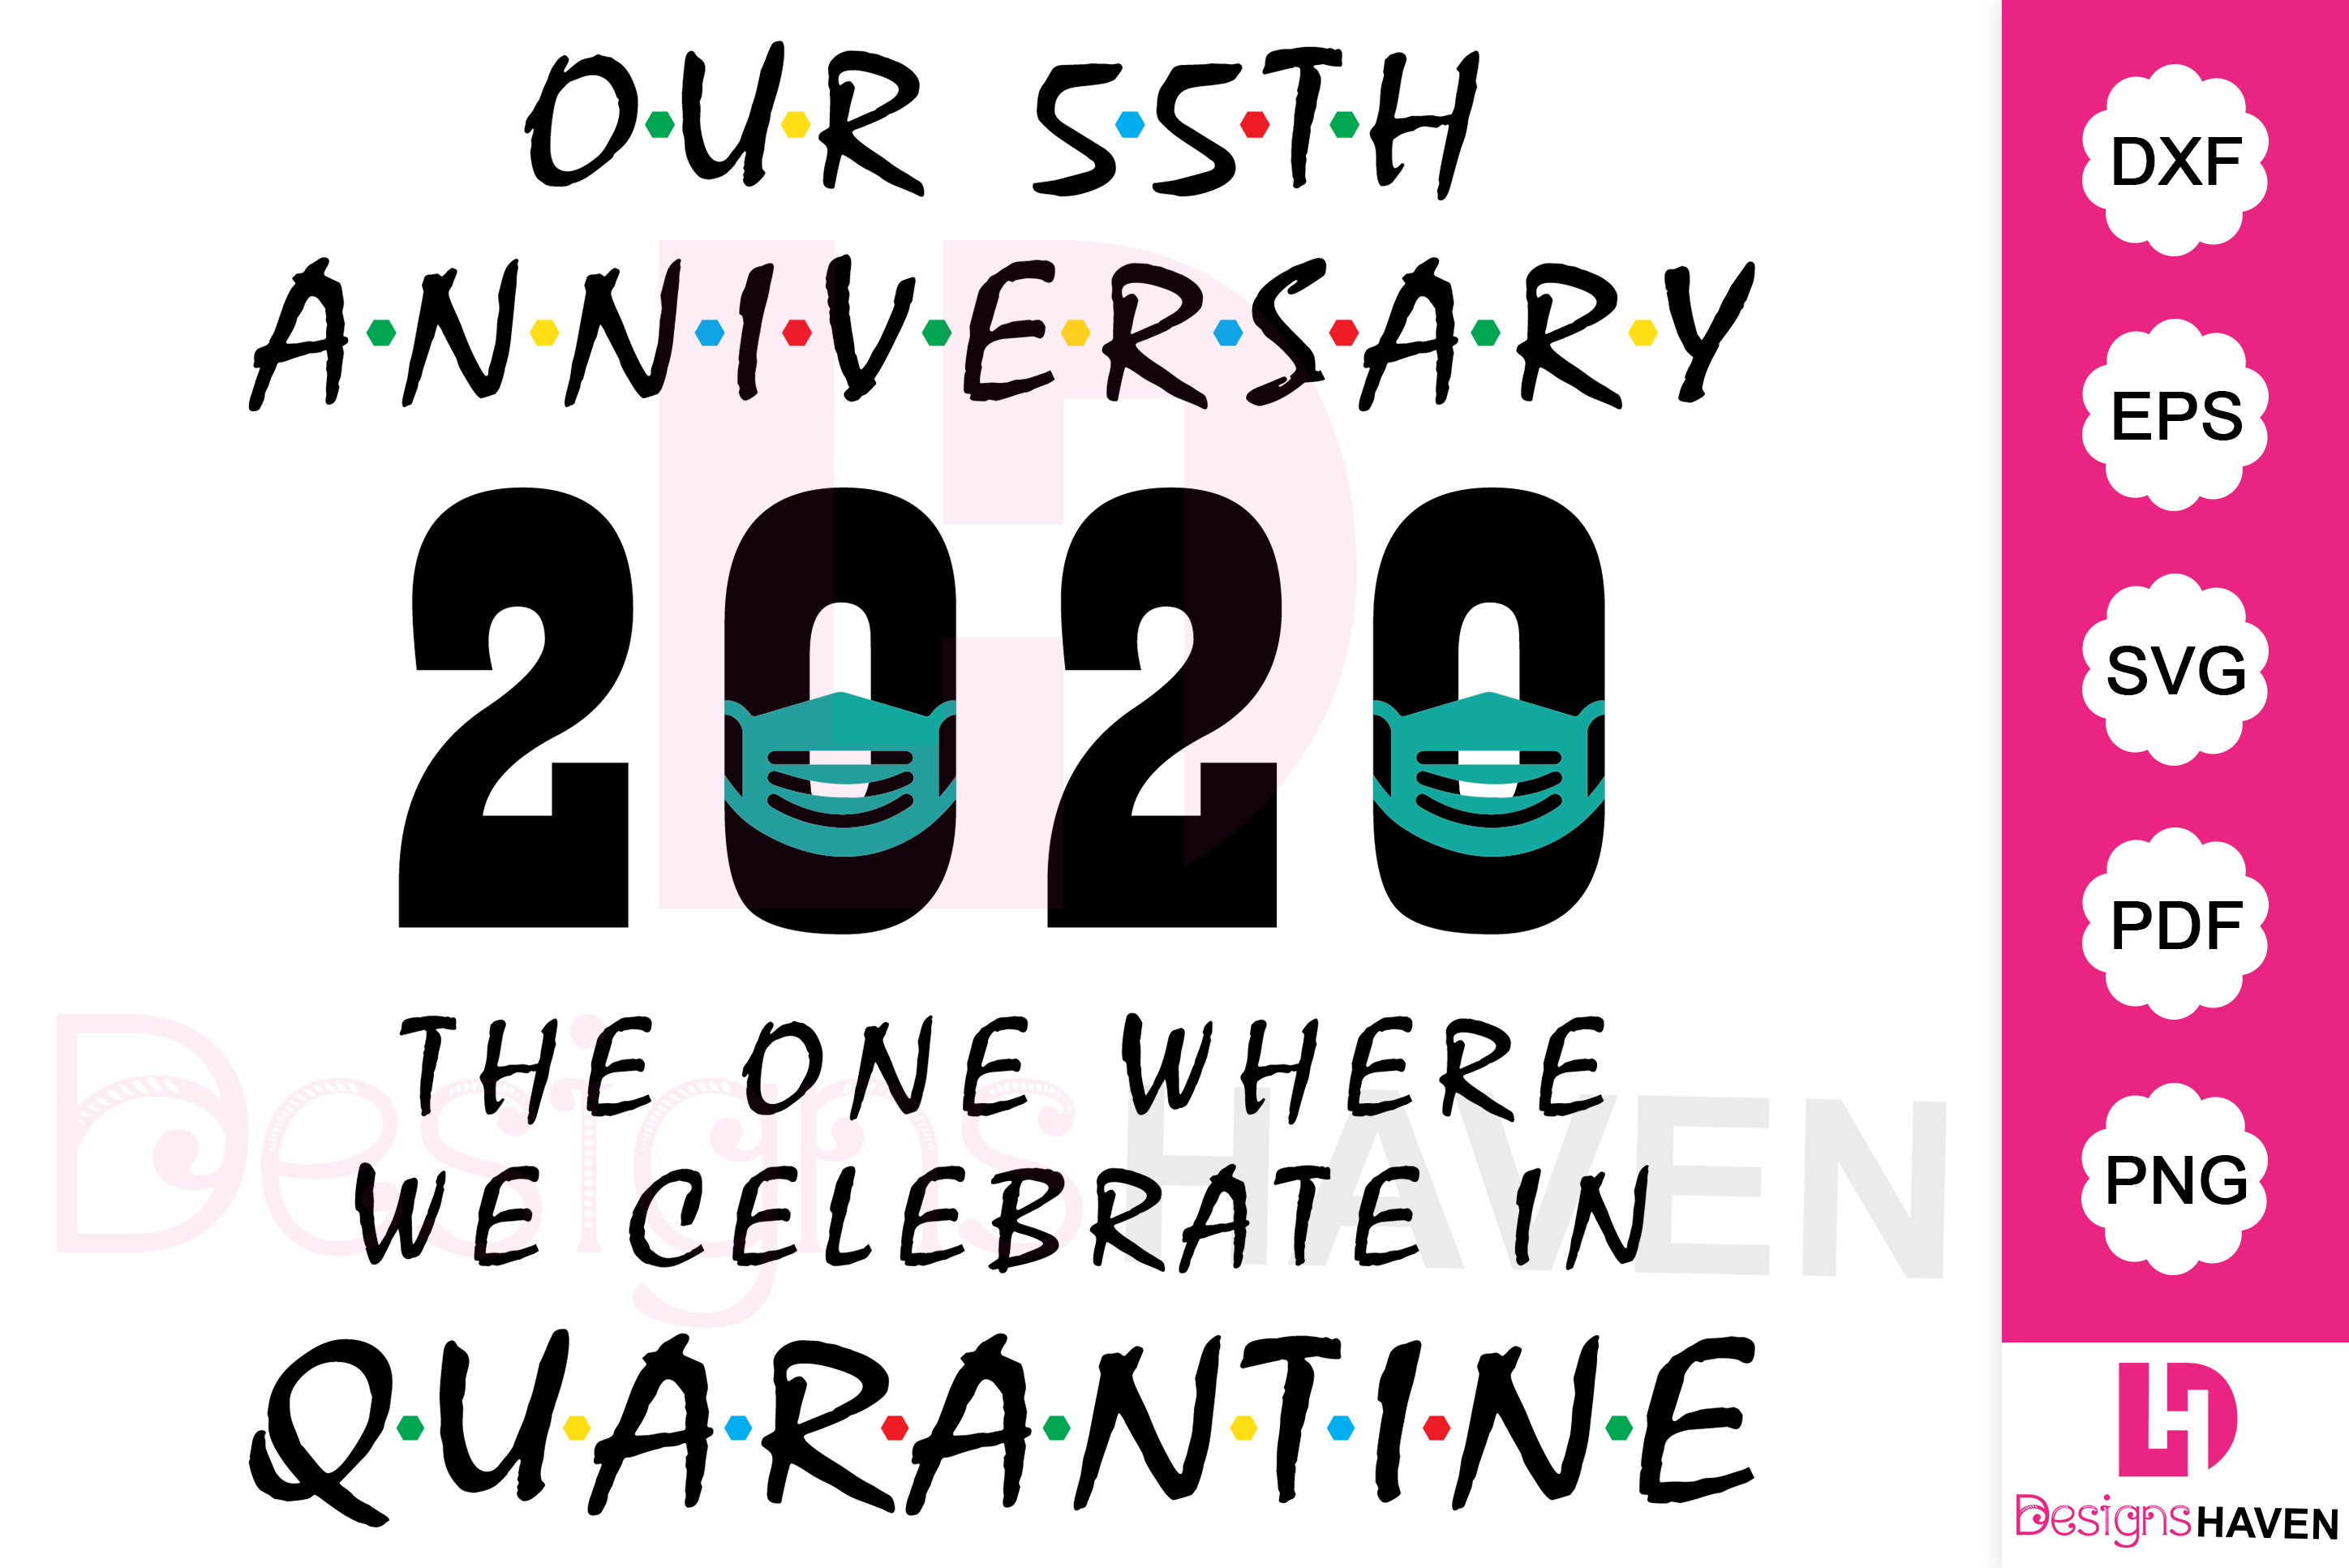 Download Free Our 55th Anniversary 2020 Quarantine Graphic By Designshavenllc for Cricut Explore, Silhouette and other cutting machines.